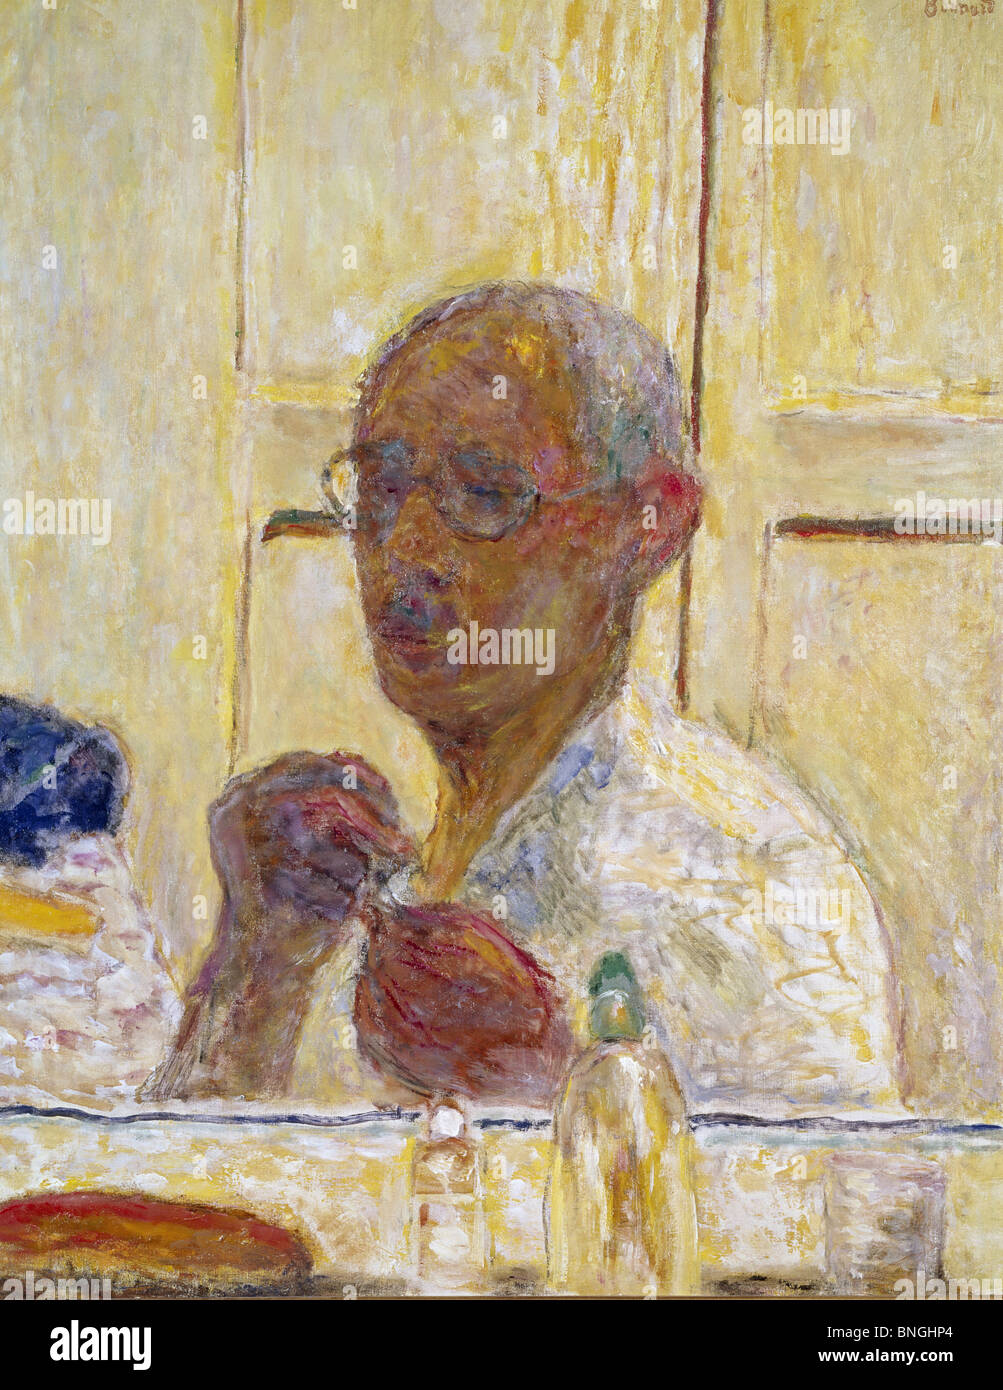 Self-portrait by Pierre Bonnard, (1867-1947), USA, New York City, Private Collection - Stock Image